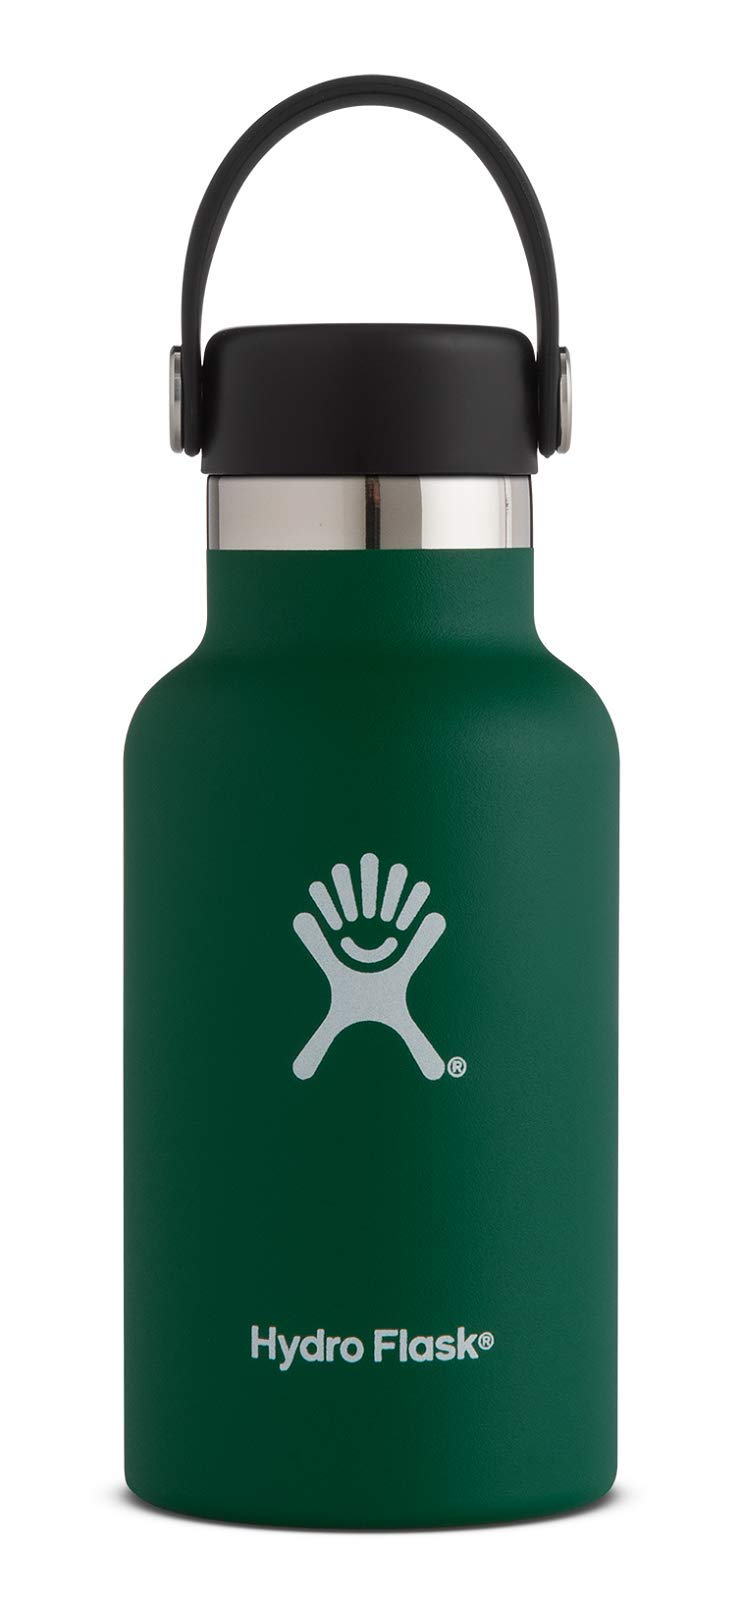 Hydro Flask 12 oz Double Wall Vacuum Insulated Stainless Steel Leak Proof Sports Water Bottle, Standard Mouth with BPA Free Flex Cap, Sage